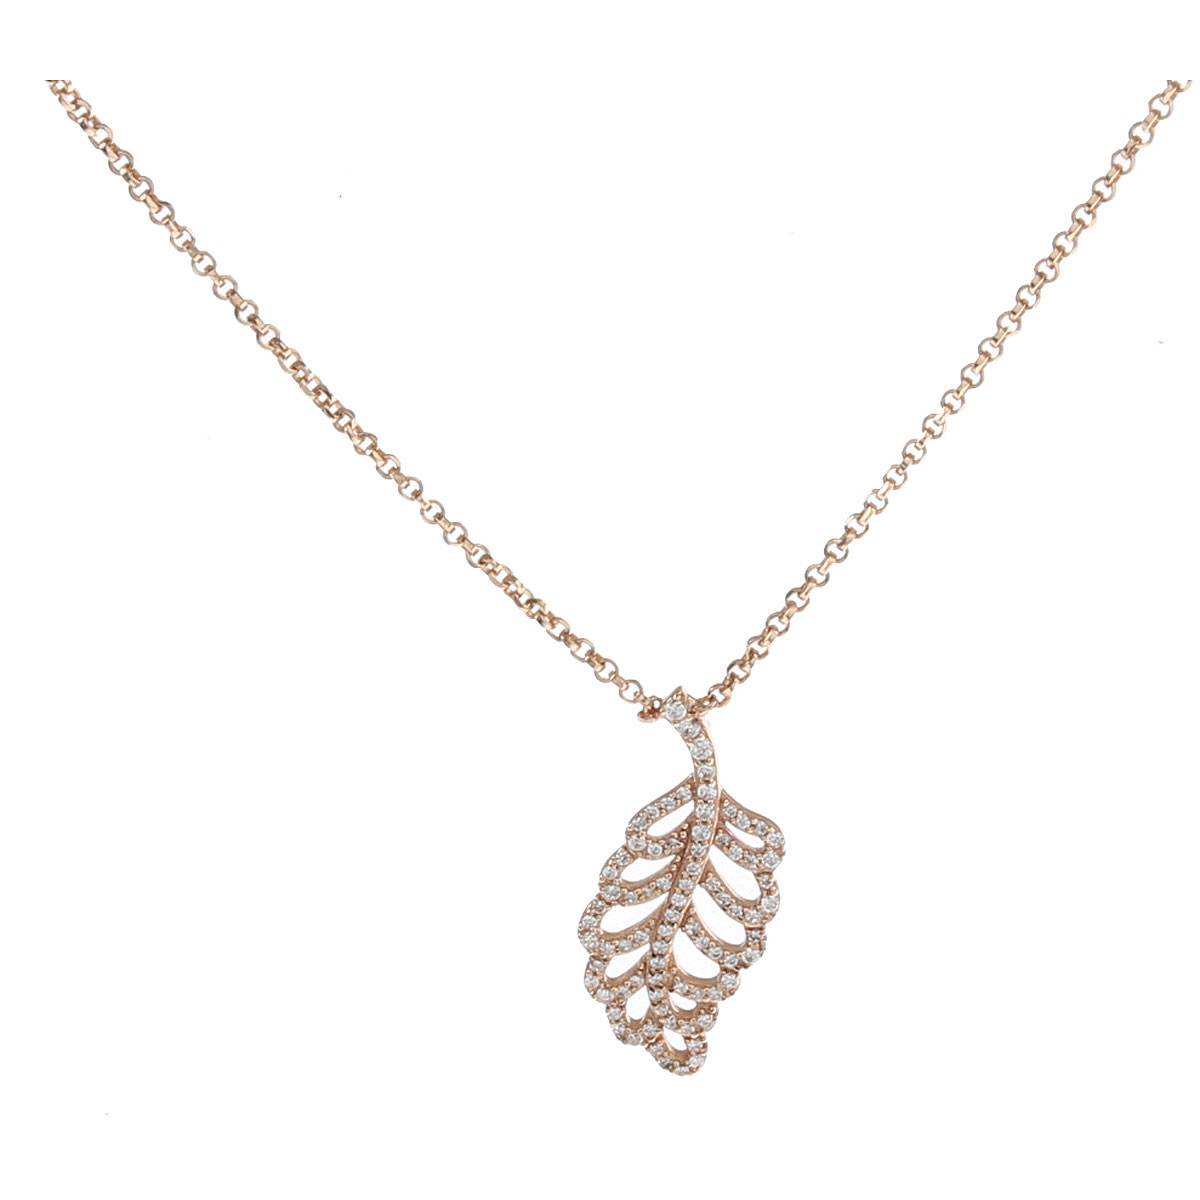 APM Monaco Necklaces On Sale, Rose Gold, Silver 925, 2019